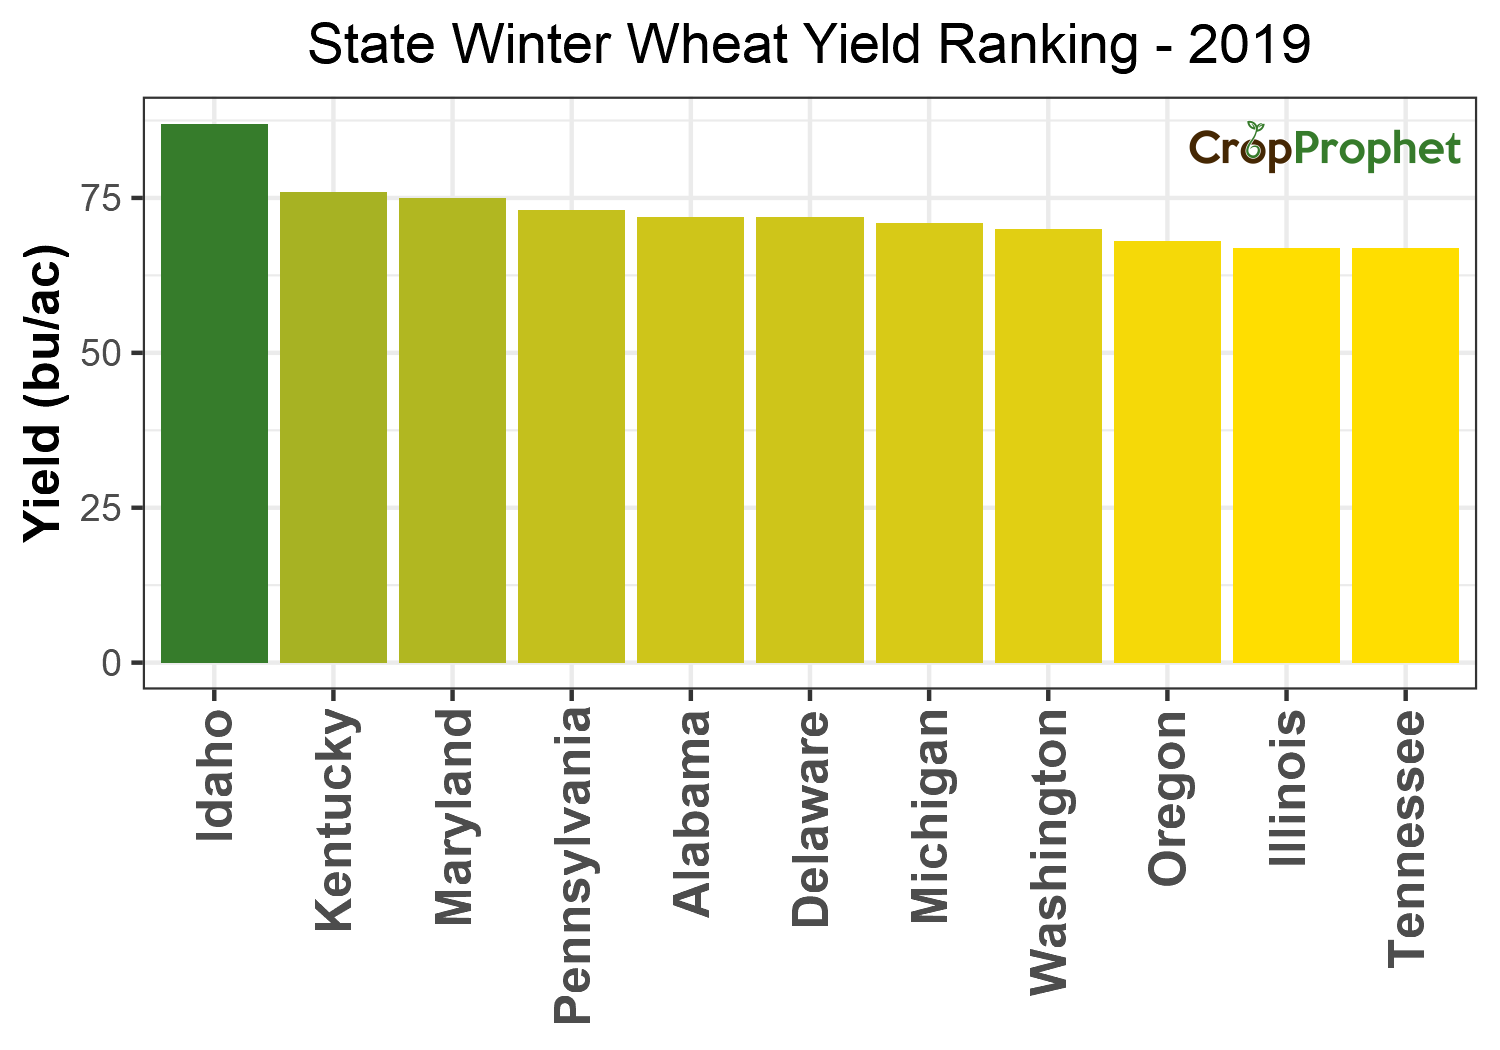 Winter wheat Production by State - 2019 Rankings